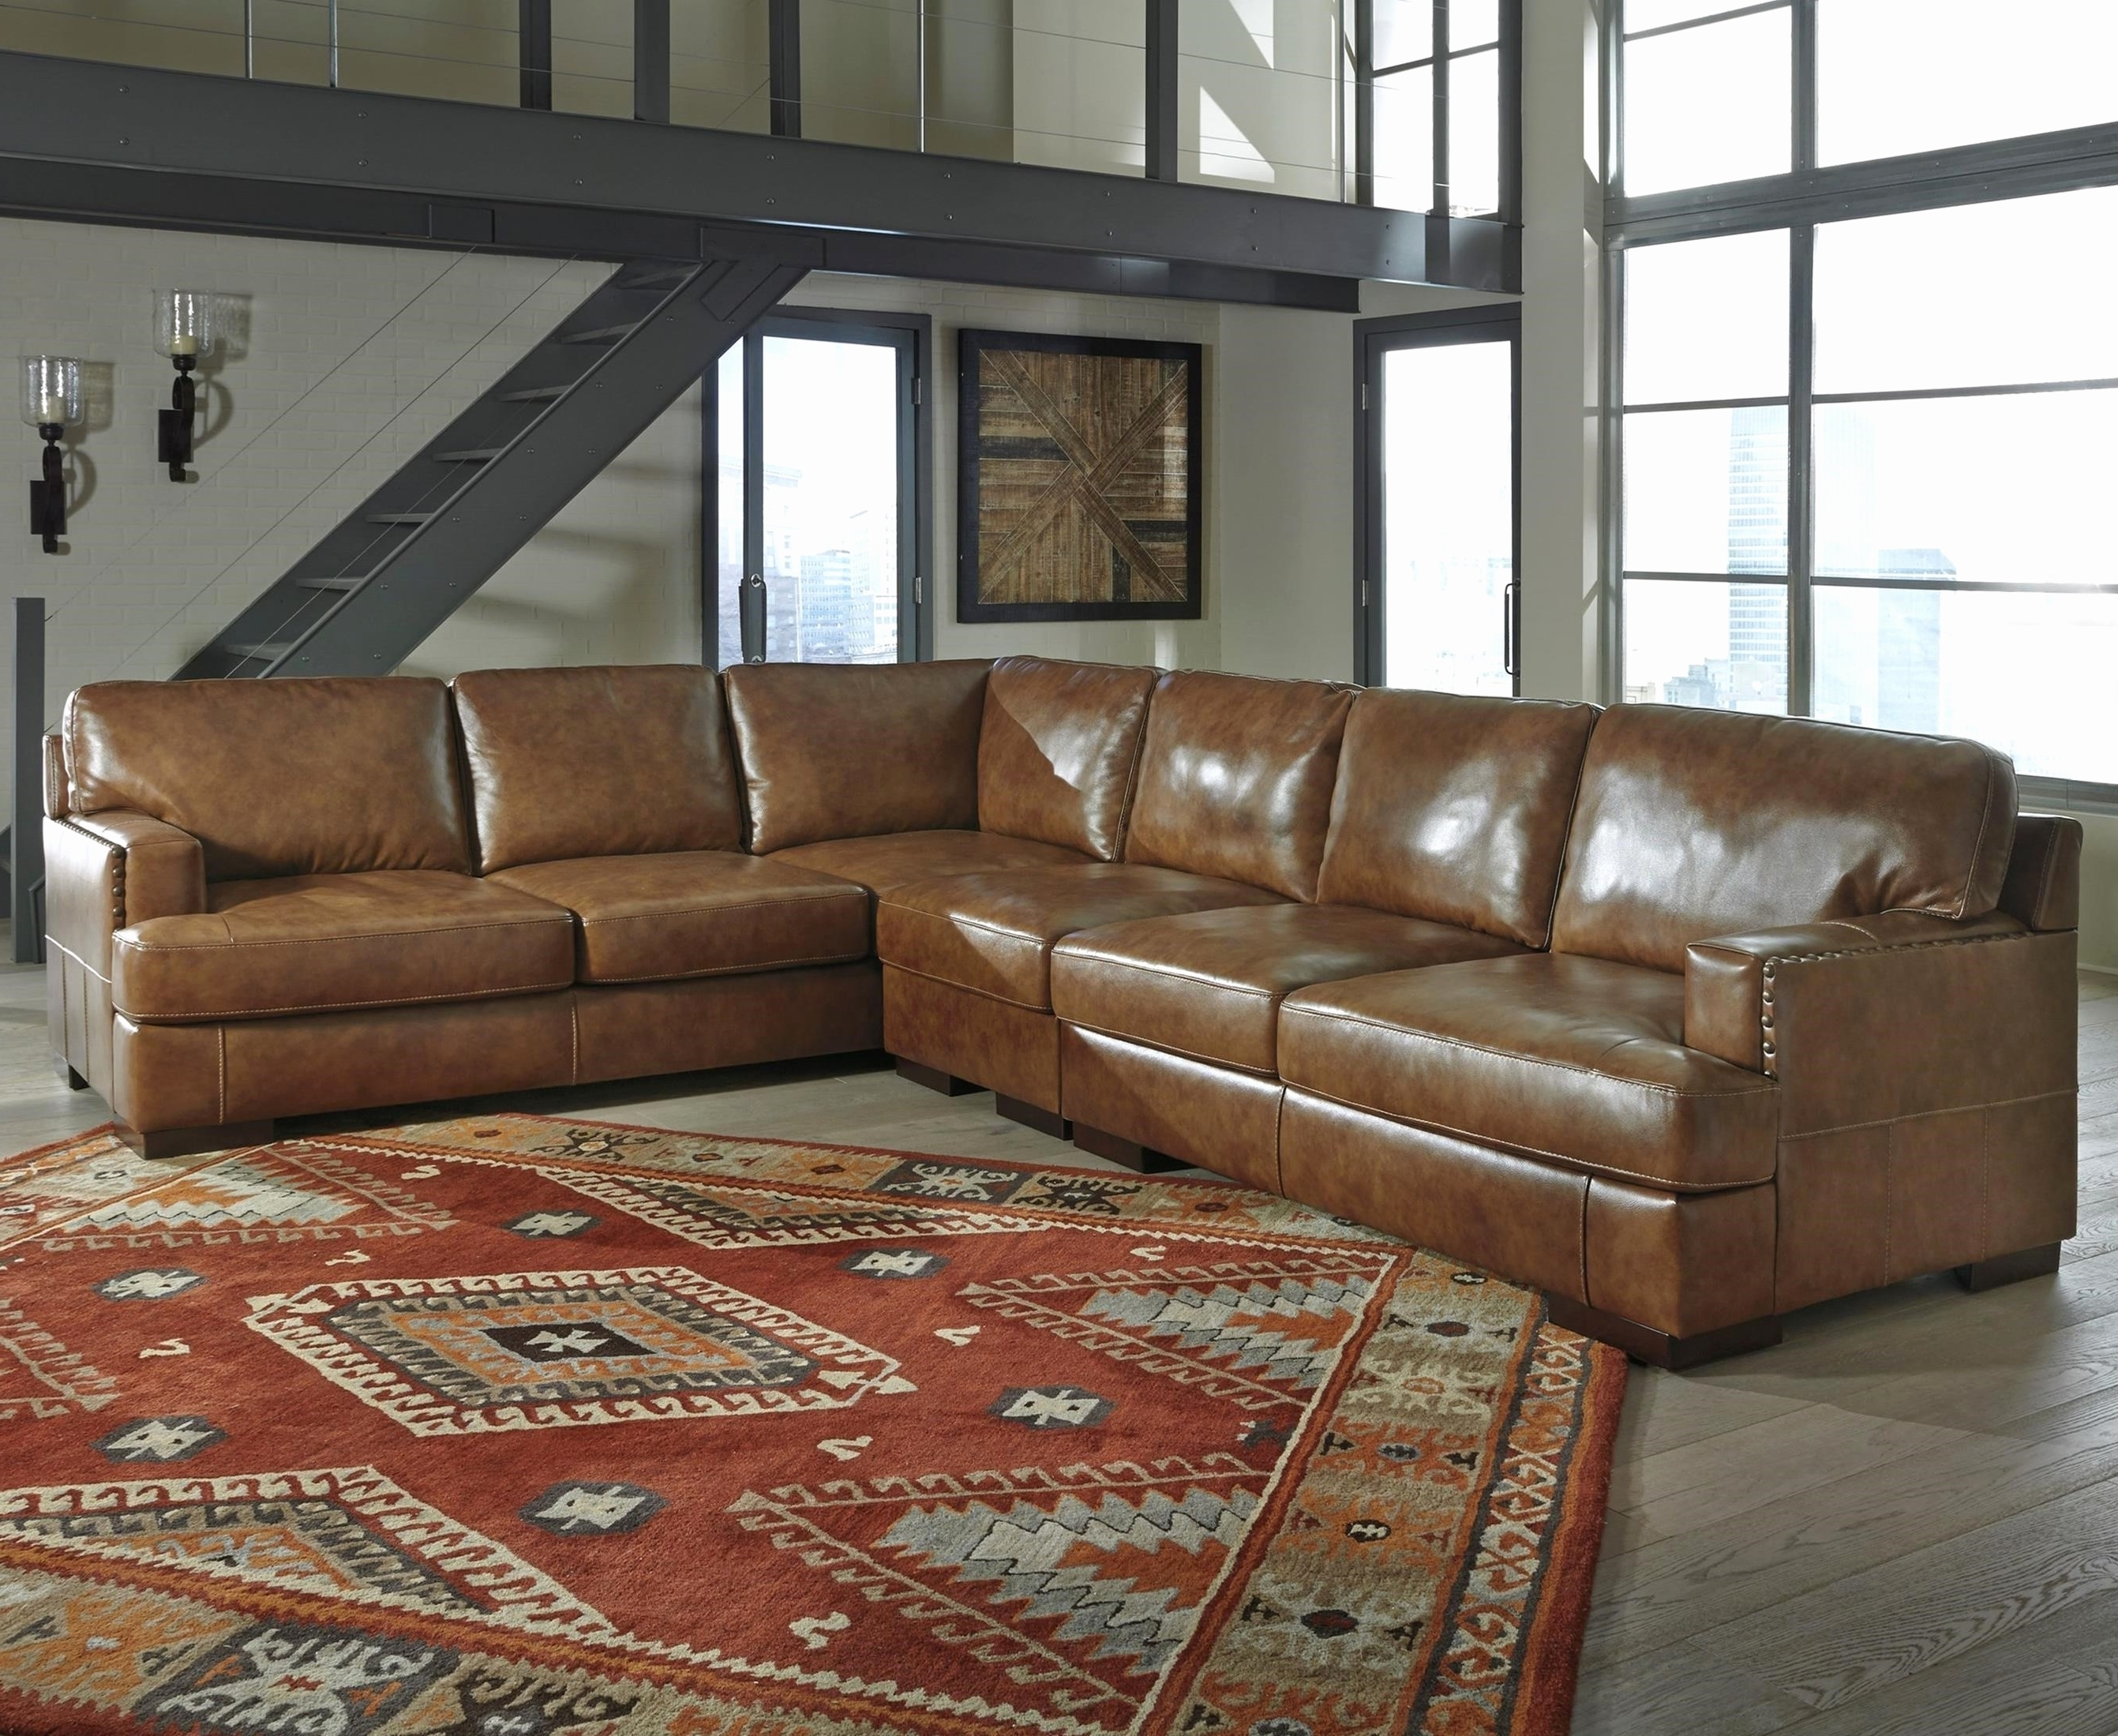 Well Liked Grand Furniture Sectional Sofas Regarding Lovely 3 Piece Corner Sectional Sofa 2018 – Couches And Sofas Ideas (View 20 of 20)